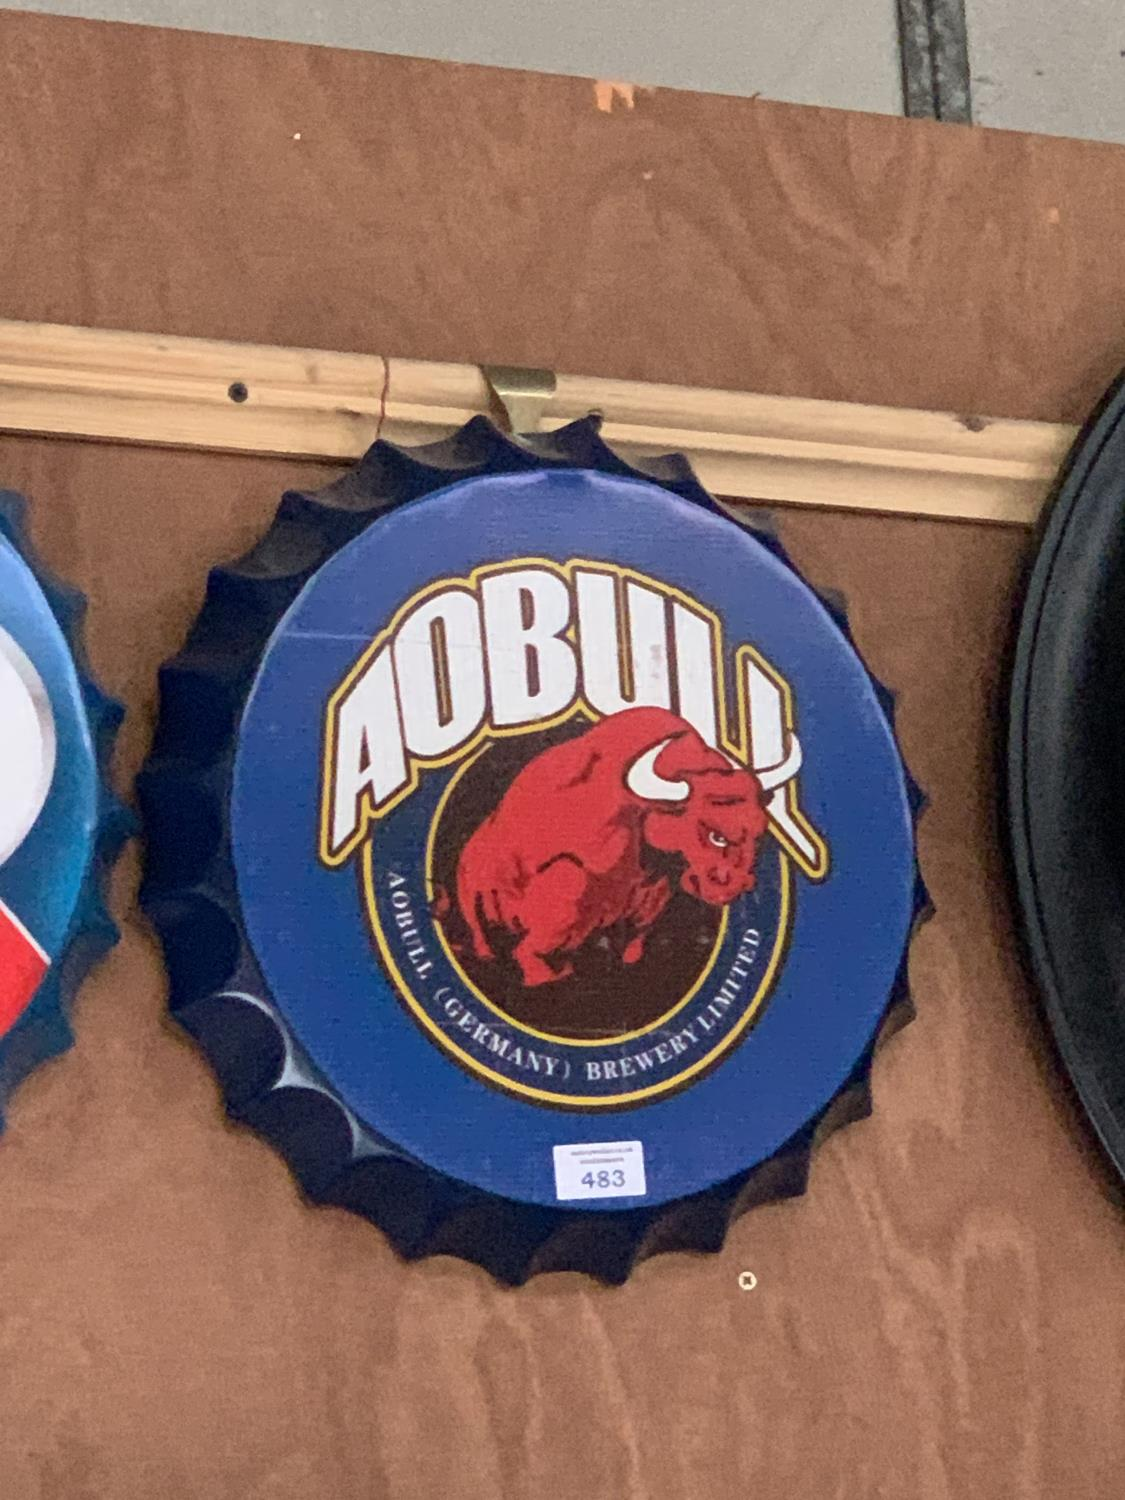 Lot 483 - A COLLECTABLE METAL BEER BOTTLE CAP 'AOBULL' SIGN